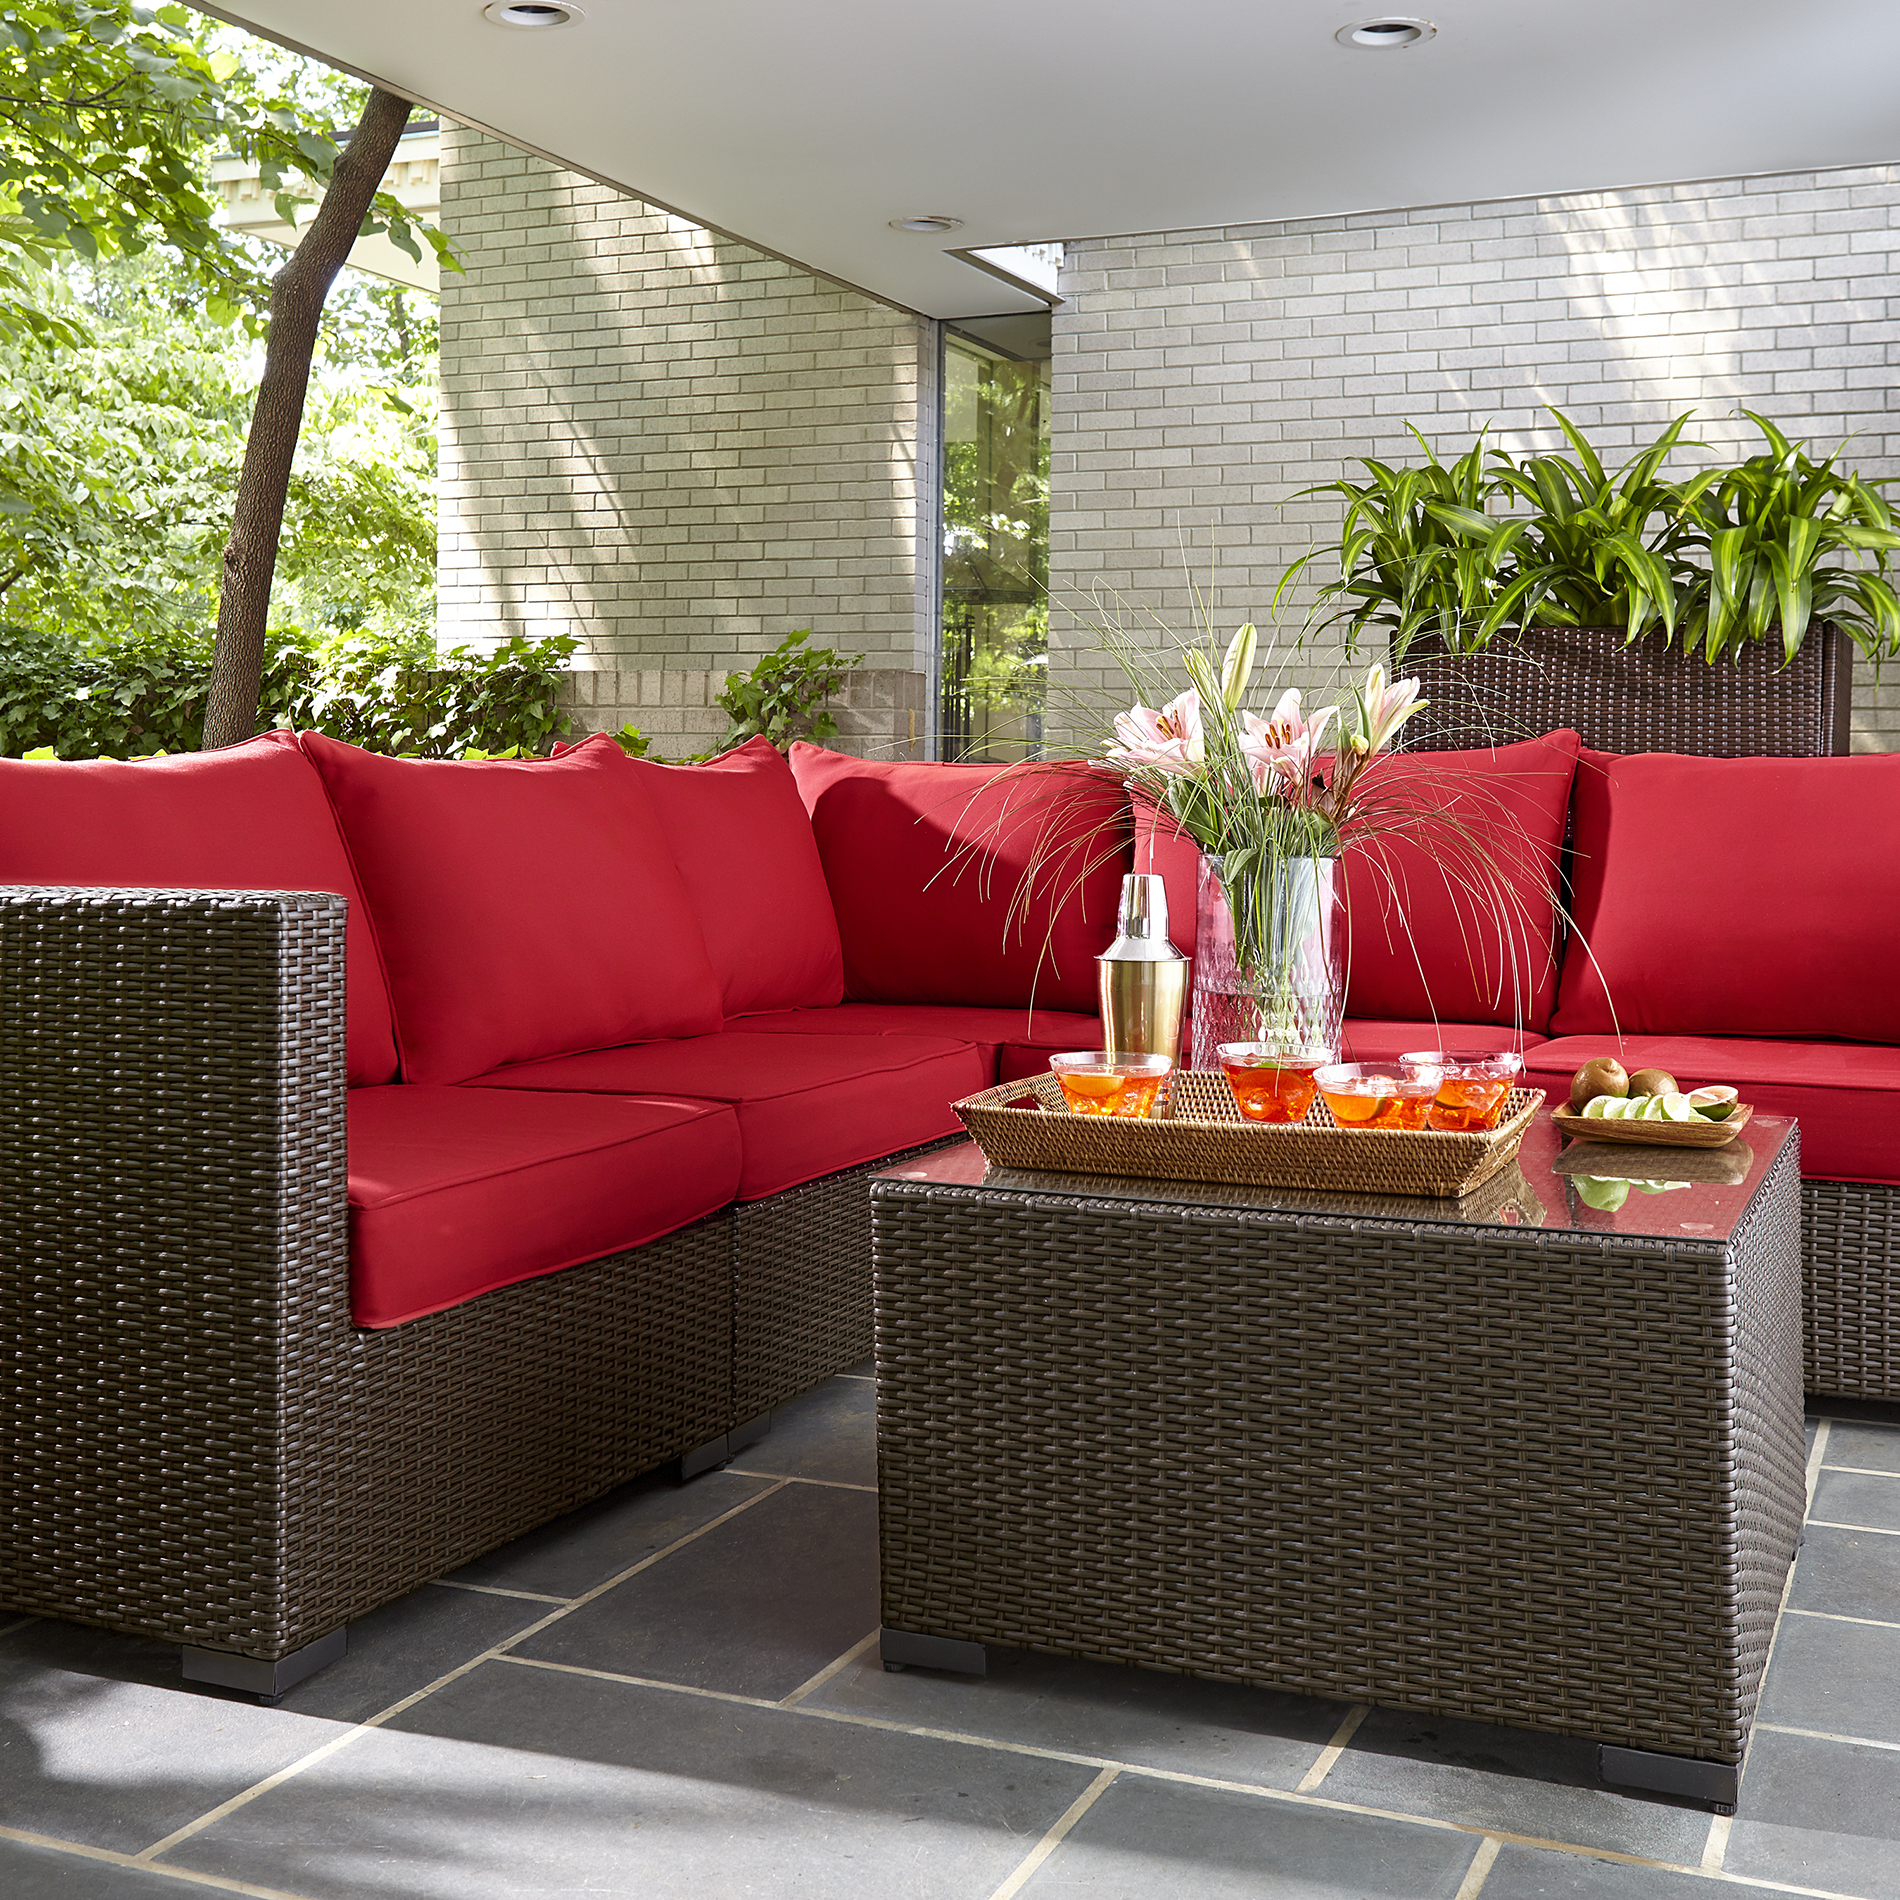 Grand Resort Osborn 6pc Sectional Seating Set- Red ... on Casual Living Patio id=42036